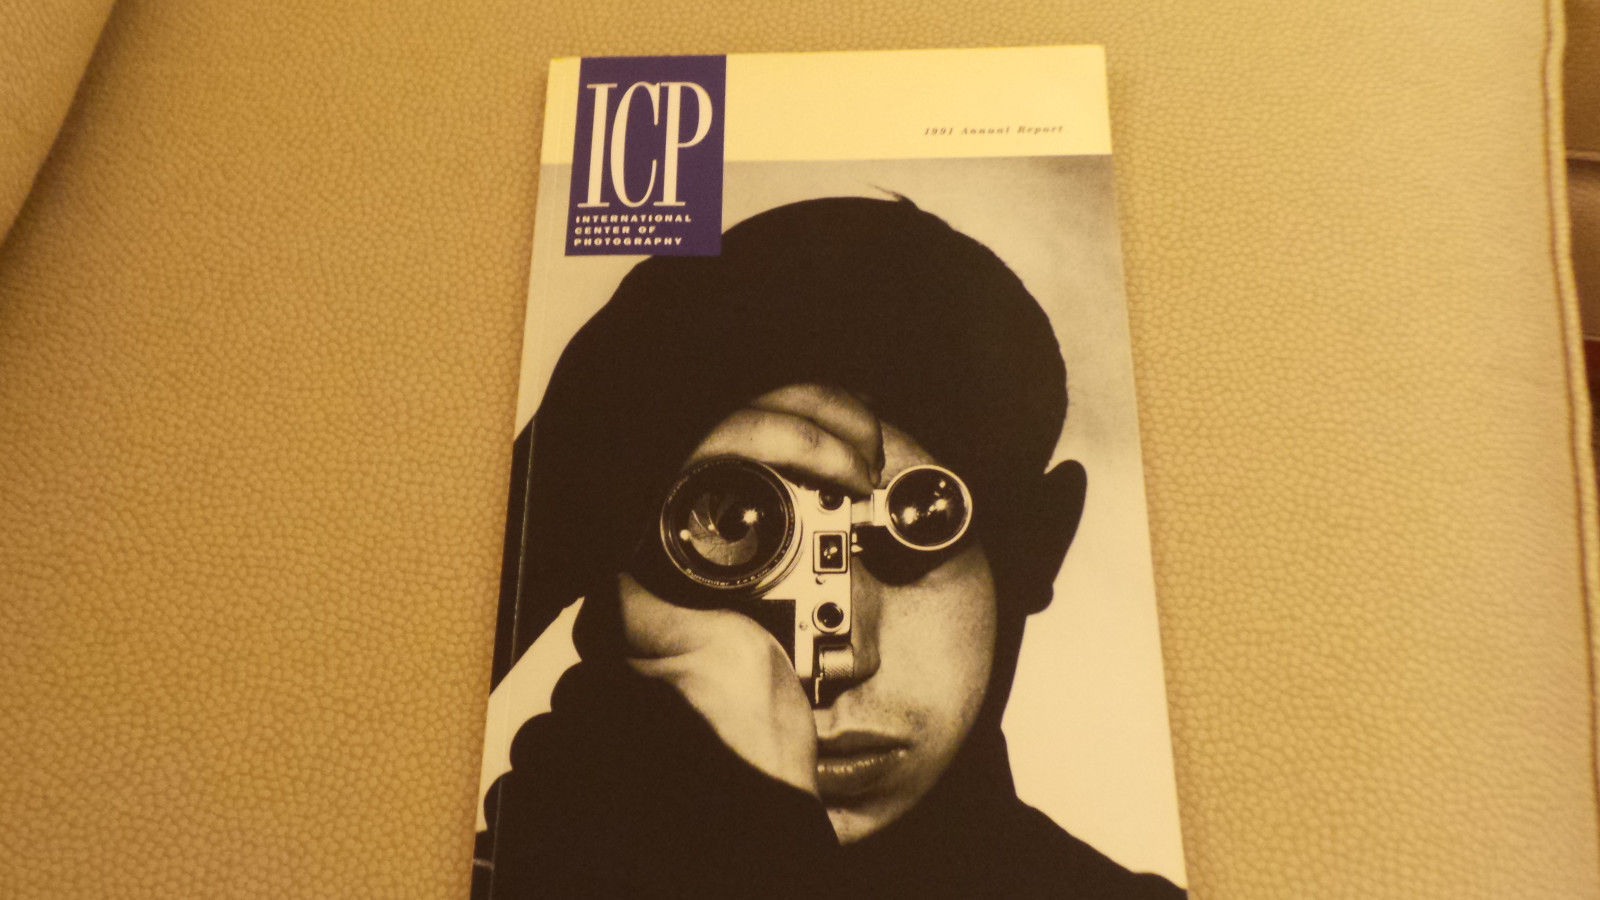 International Center of Photography ICP, New York City 1991 Annual Report VG+